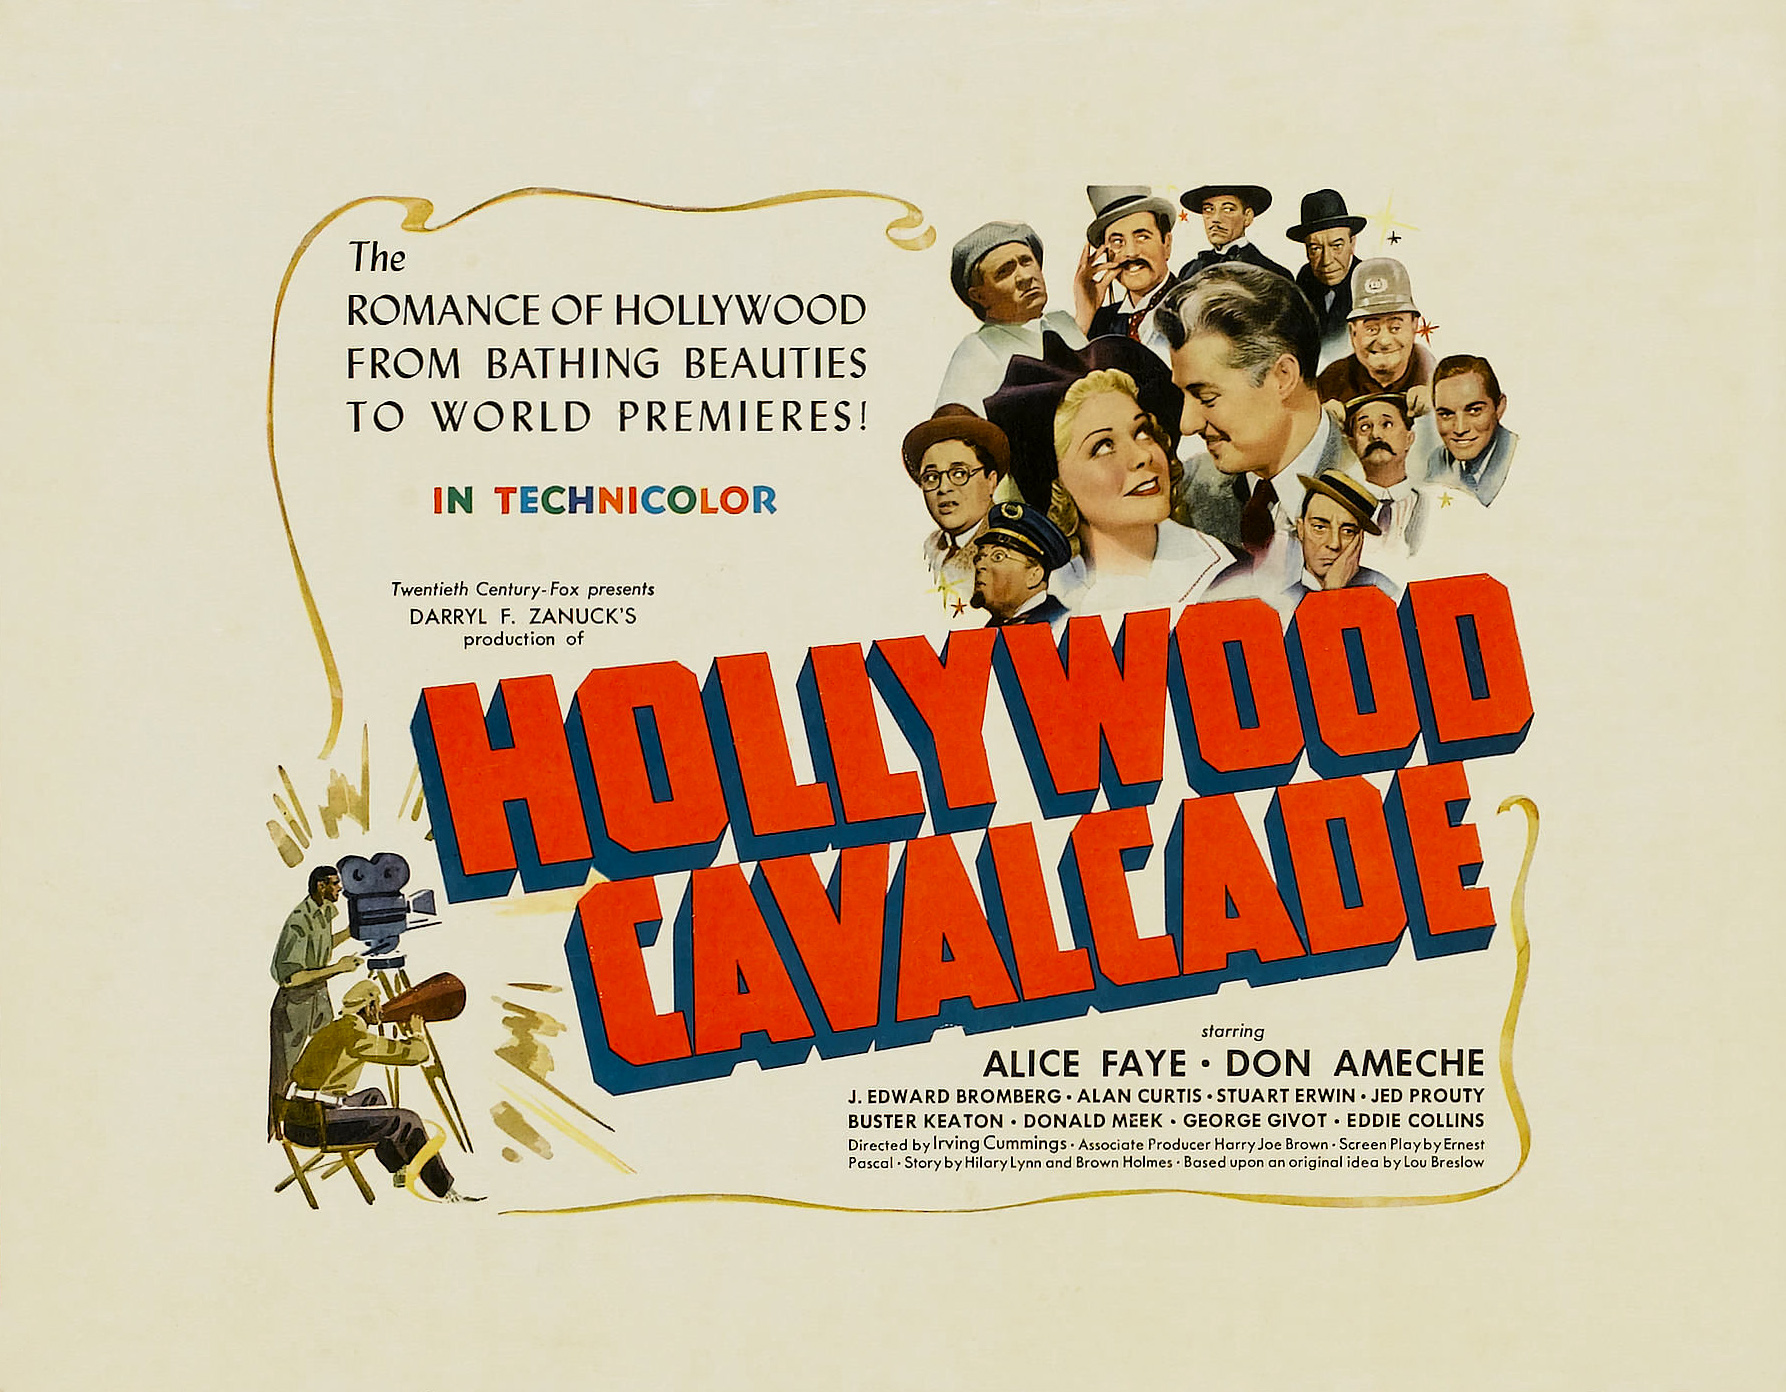 Buster Keaton, Don Ameche, Hank Mann, J. Edward Bromberg, Eddie Collins, Alan Curtis, Stuart Erwin, Alice Faye, James Finlayson, George Givot, Donald Meek, and Jed Prouty in Hollywood Cavalcade (1939)